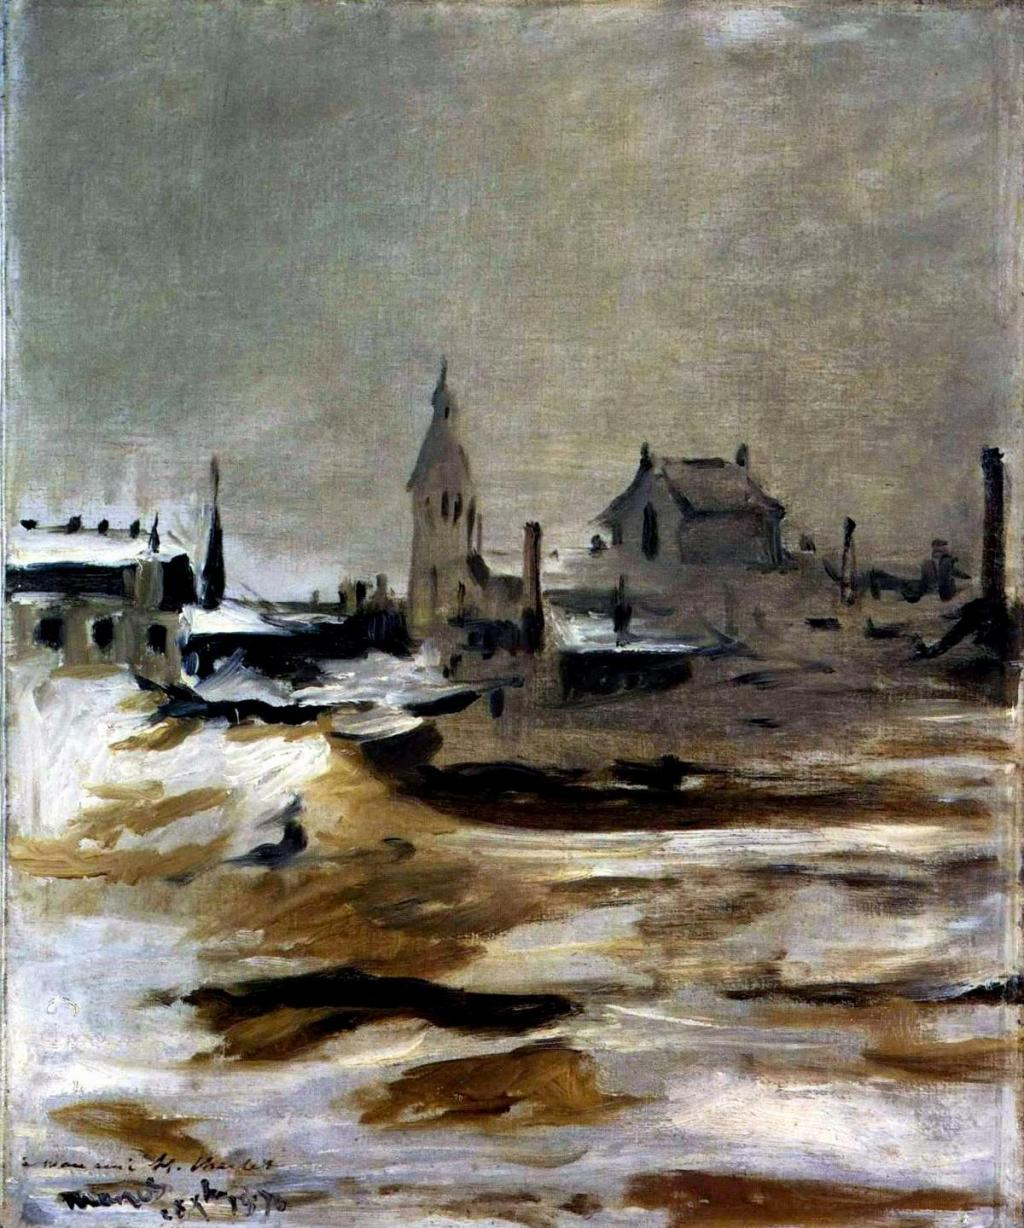 Édouard Manet. Effect of a Snowfall at Petit-Montrouge. 1870